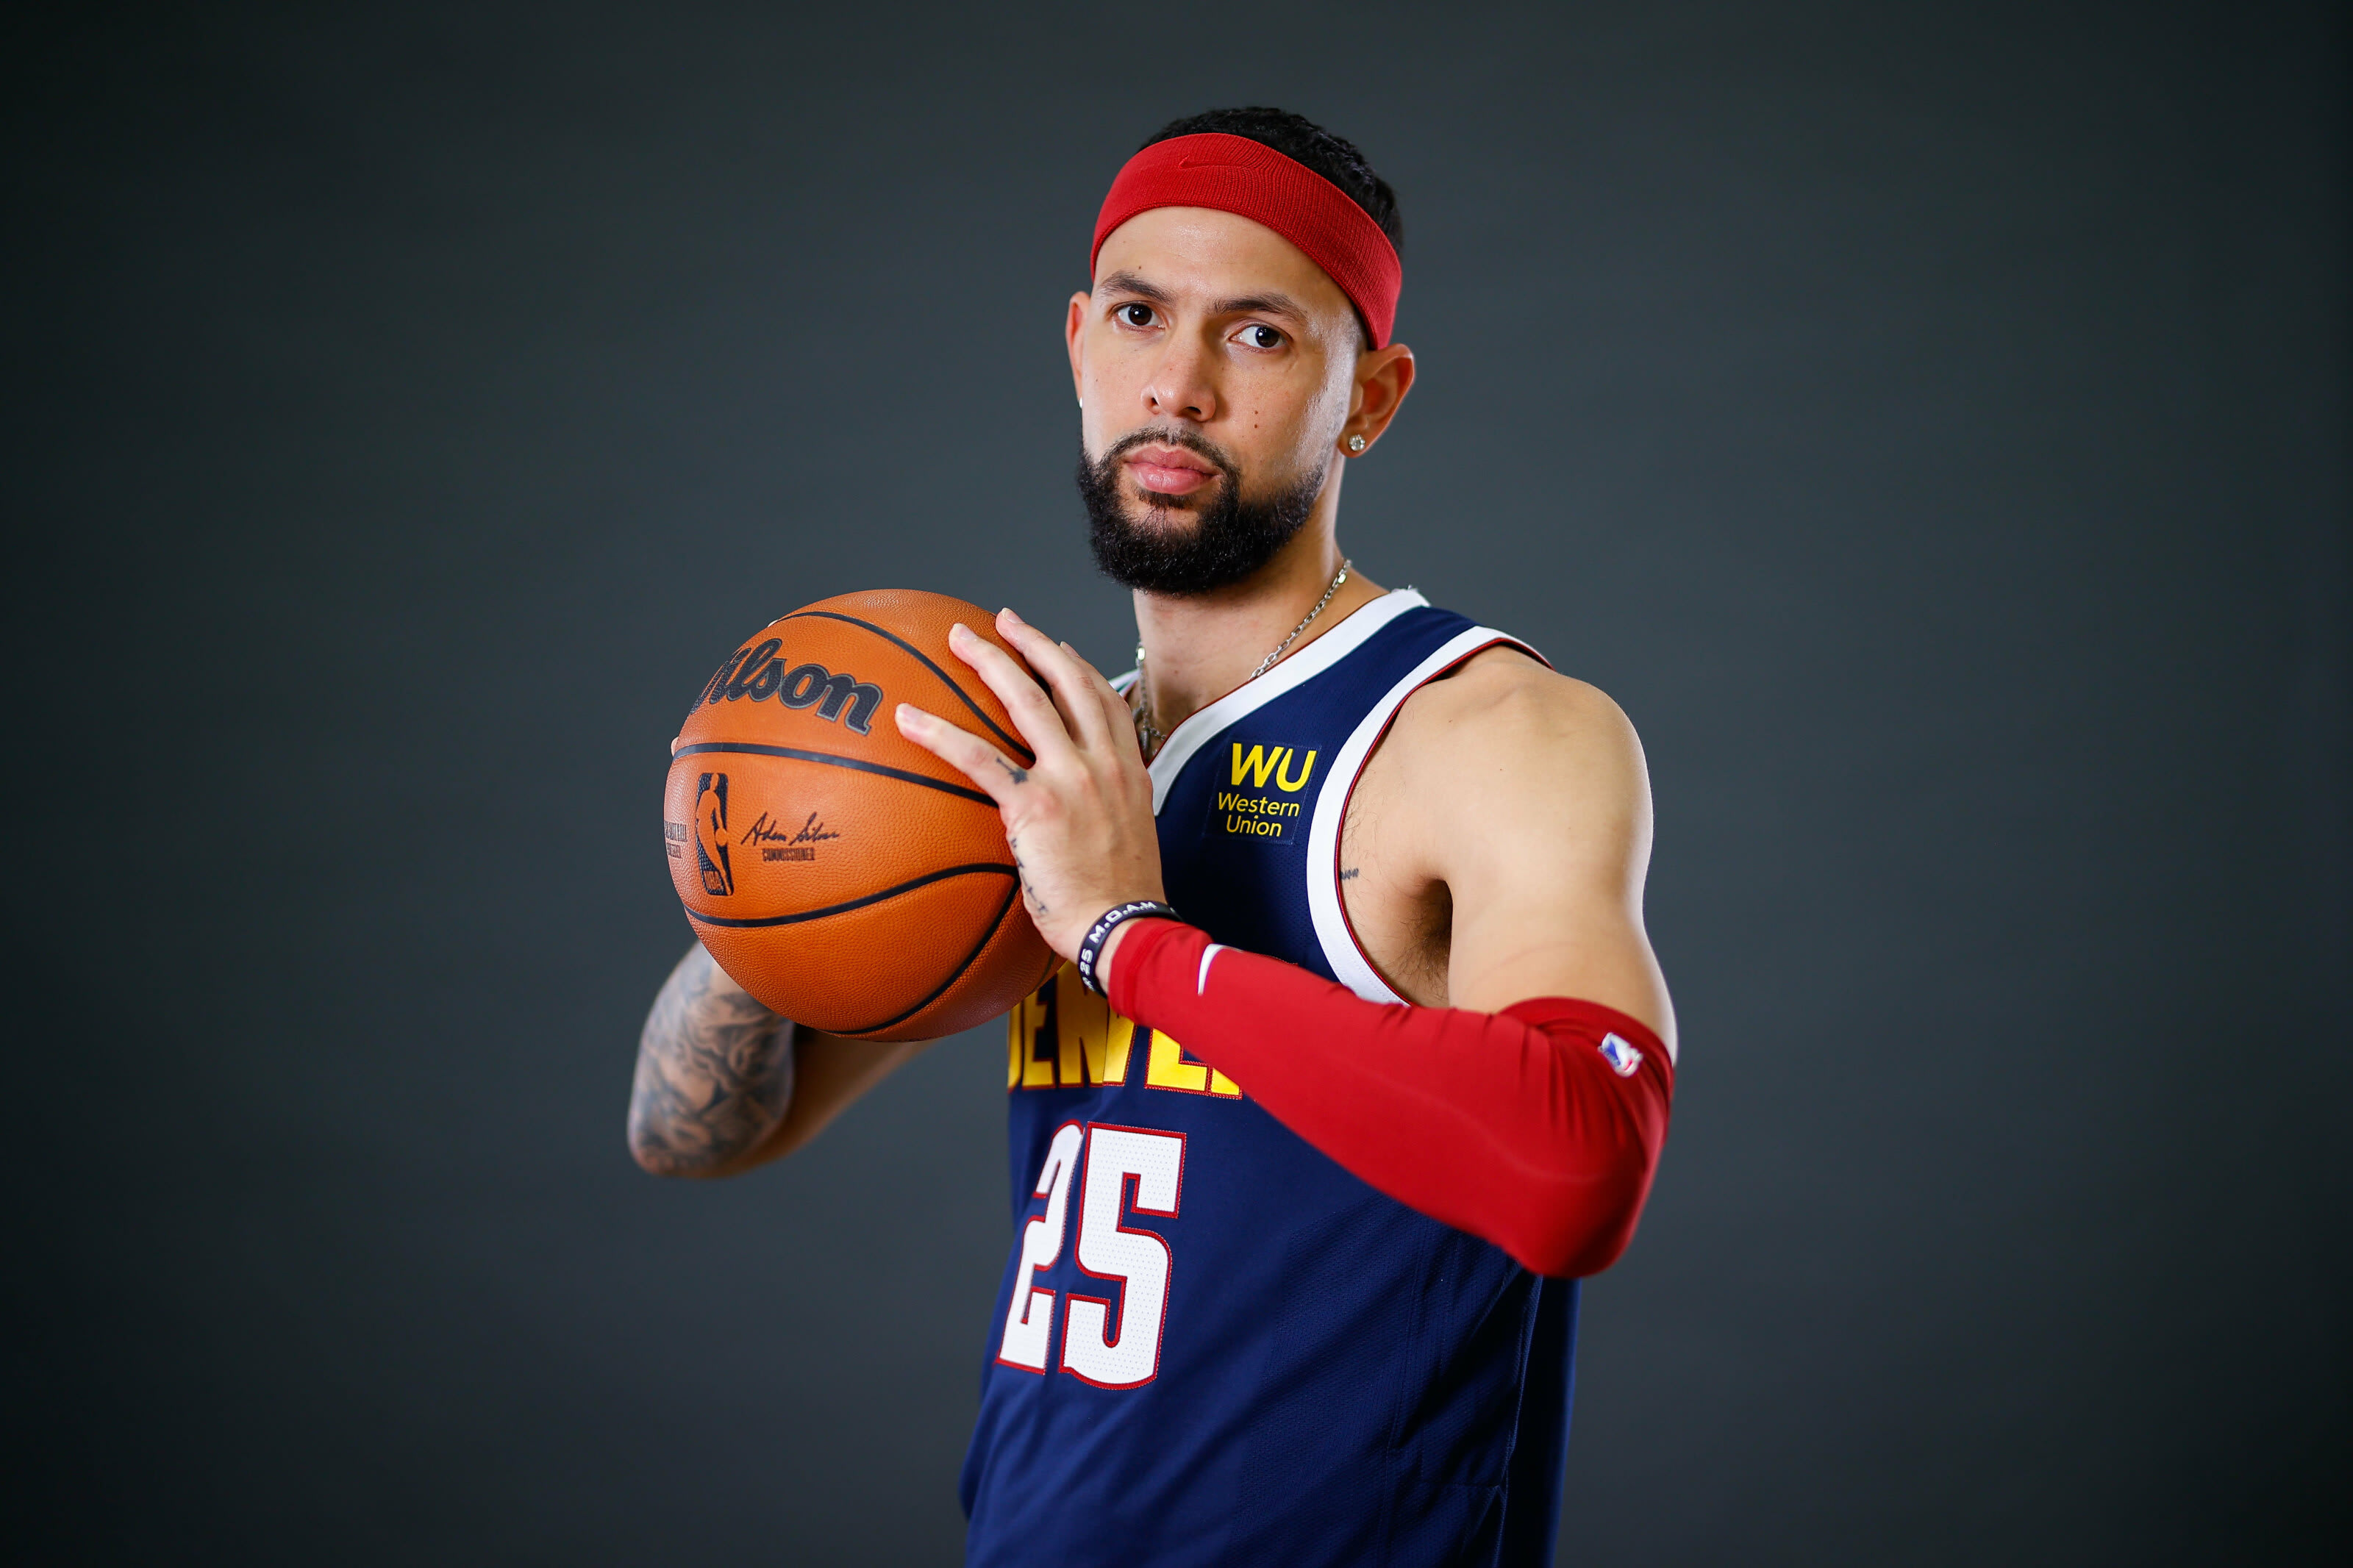 Denver Nuggets guard Austin Rivers (25) poses for a photo during media day at Ball Arena on 27 Sept. 2021. (Isaiah J. Downing-USA TODAY Sports)